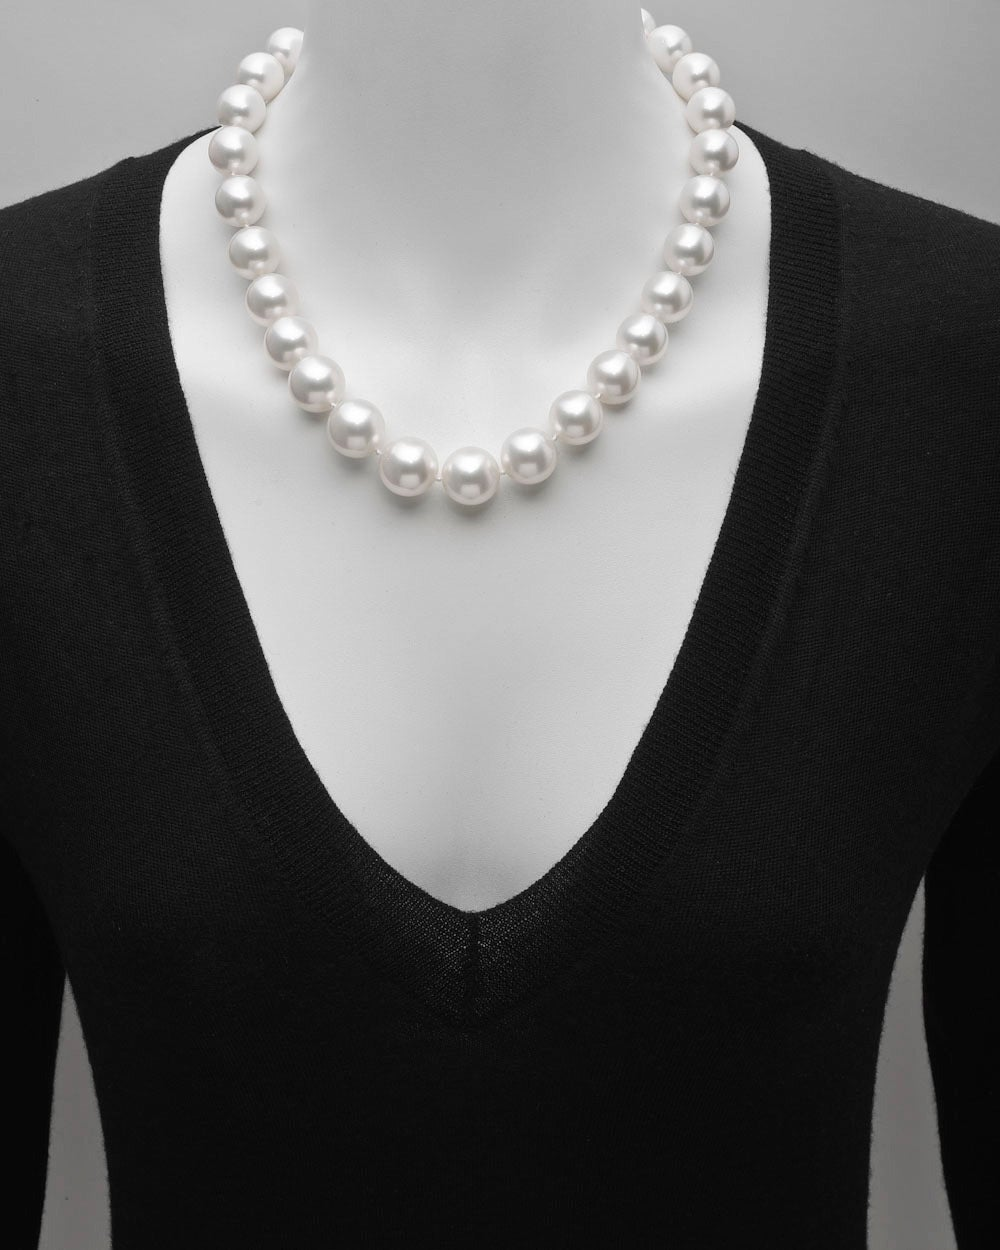 South Sea Pearl Necklace with Pave Diamond Clasp 2